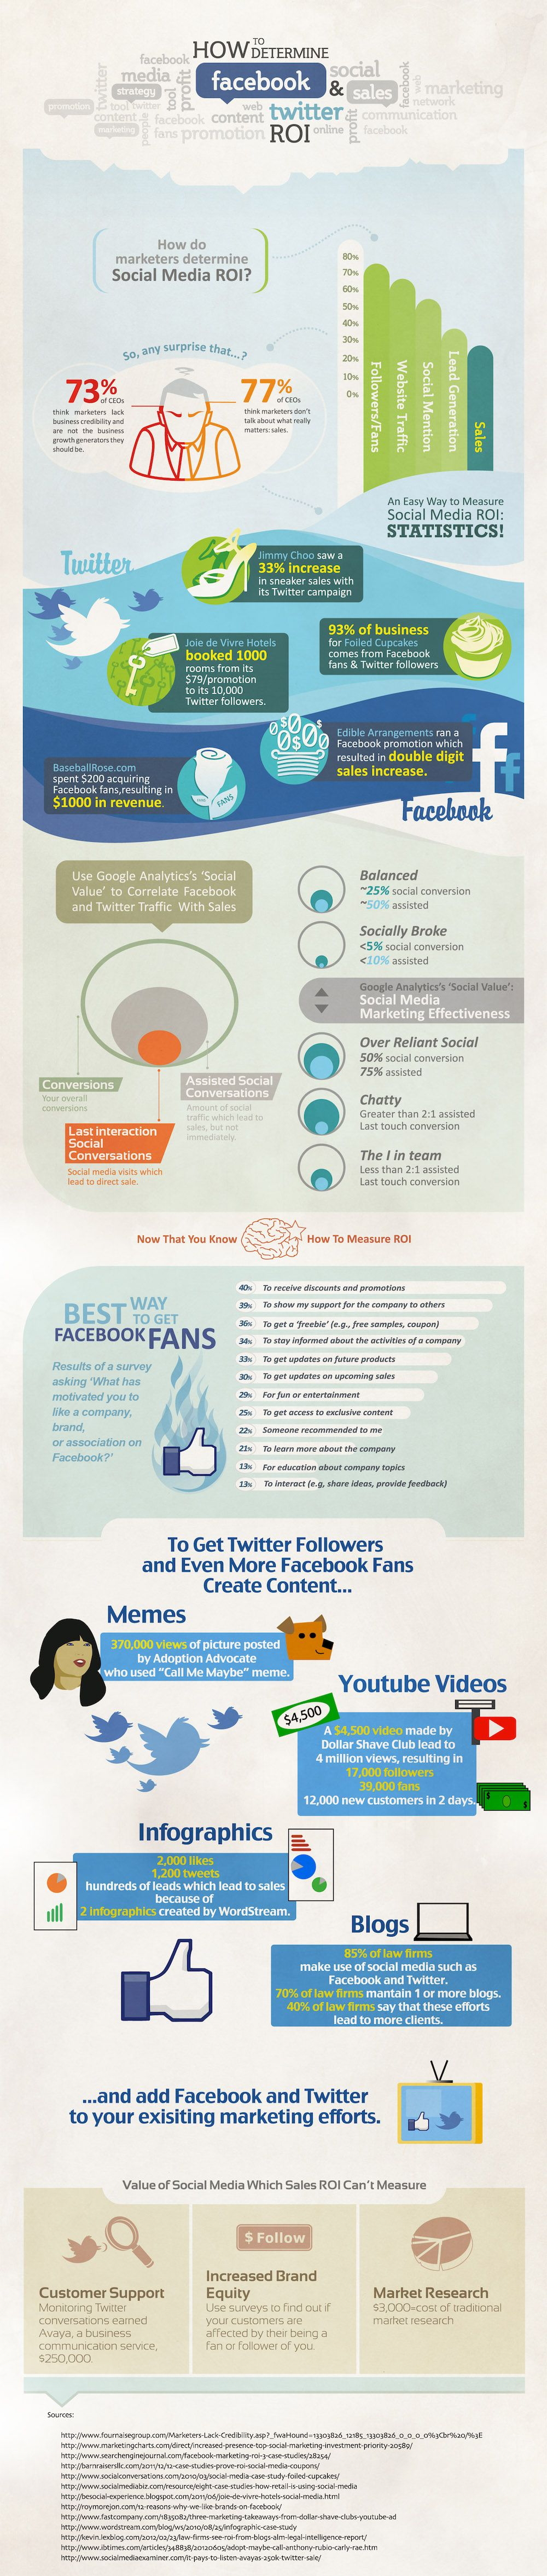 Social Media ROI in an infographic. Page links to @Rob Petersen's free eBook based on social media case studies.